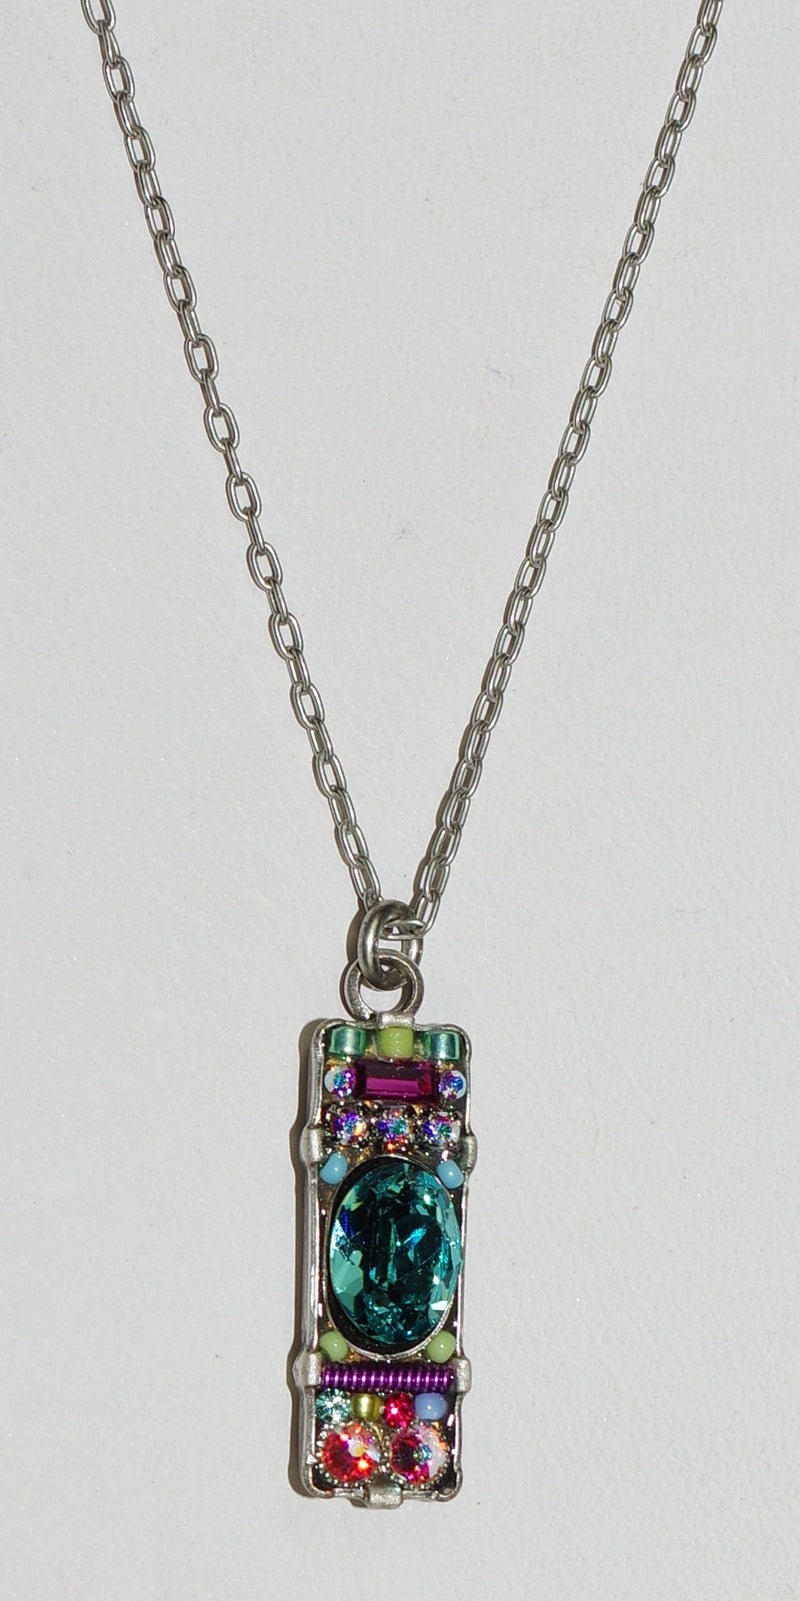 "FIREFLY NECKLACE BAR SOFT: multi color stones in 1"" pendant, silver 18"" adjustable chain"